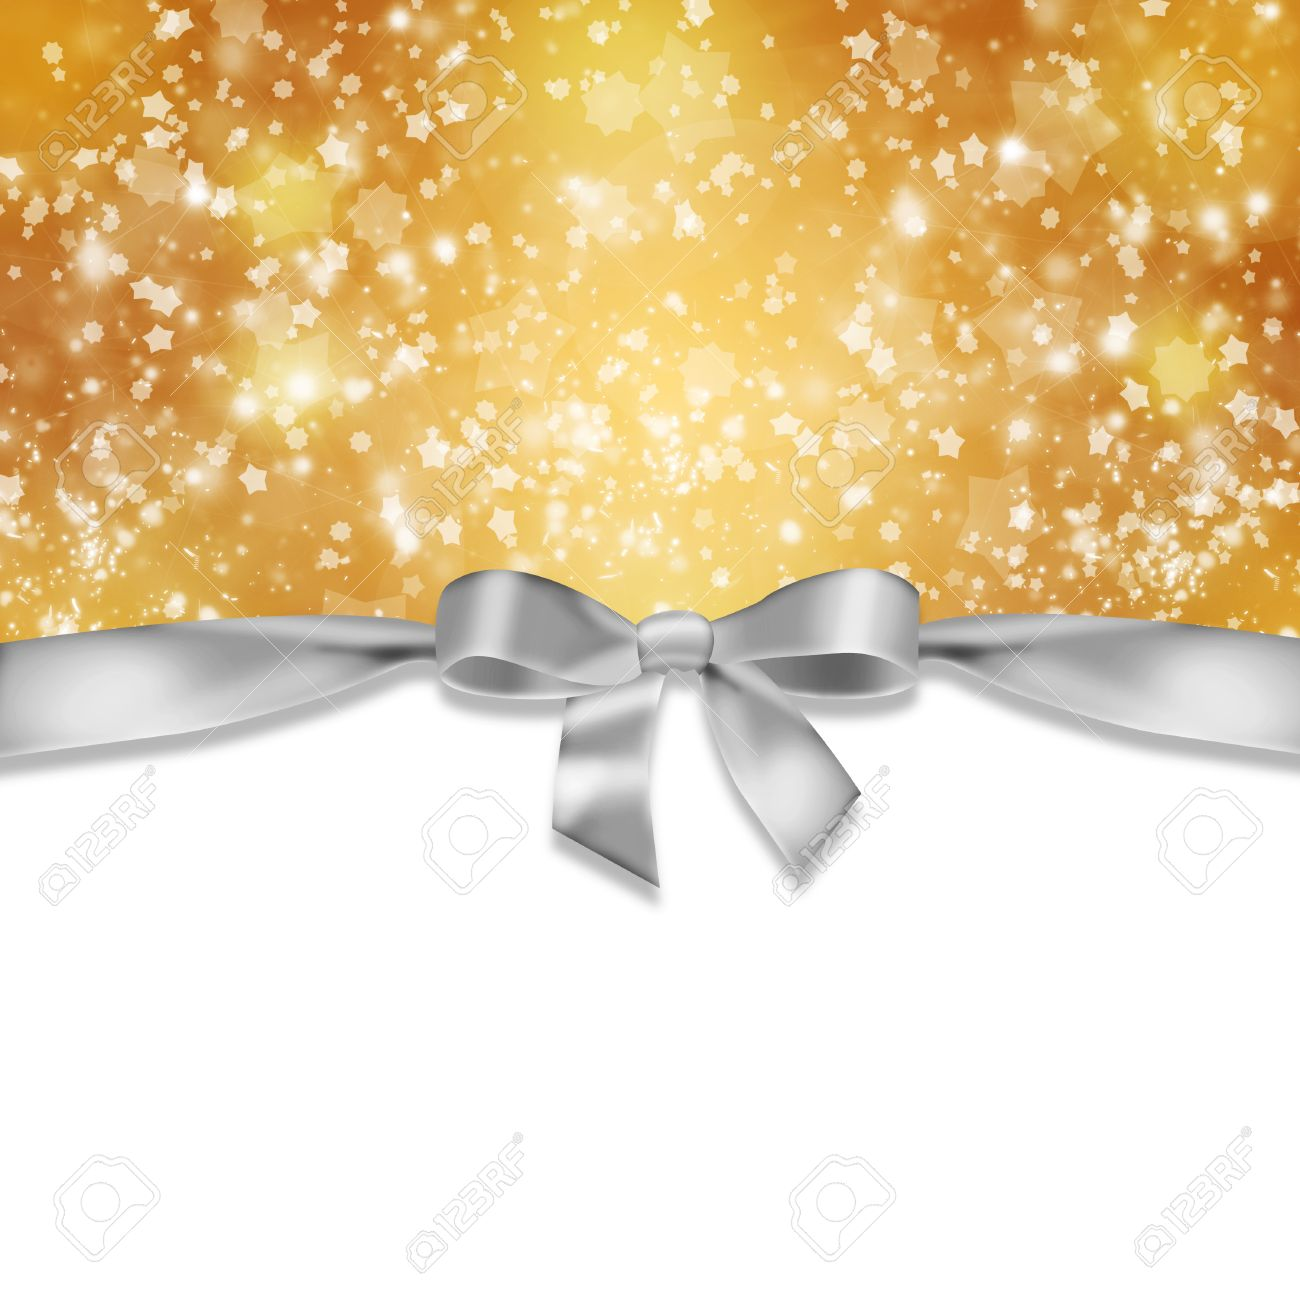 New Year S Background Ribbon And Snowflakes On Abstract Gold Stock Photo